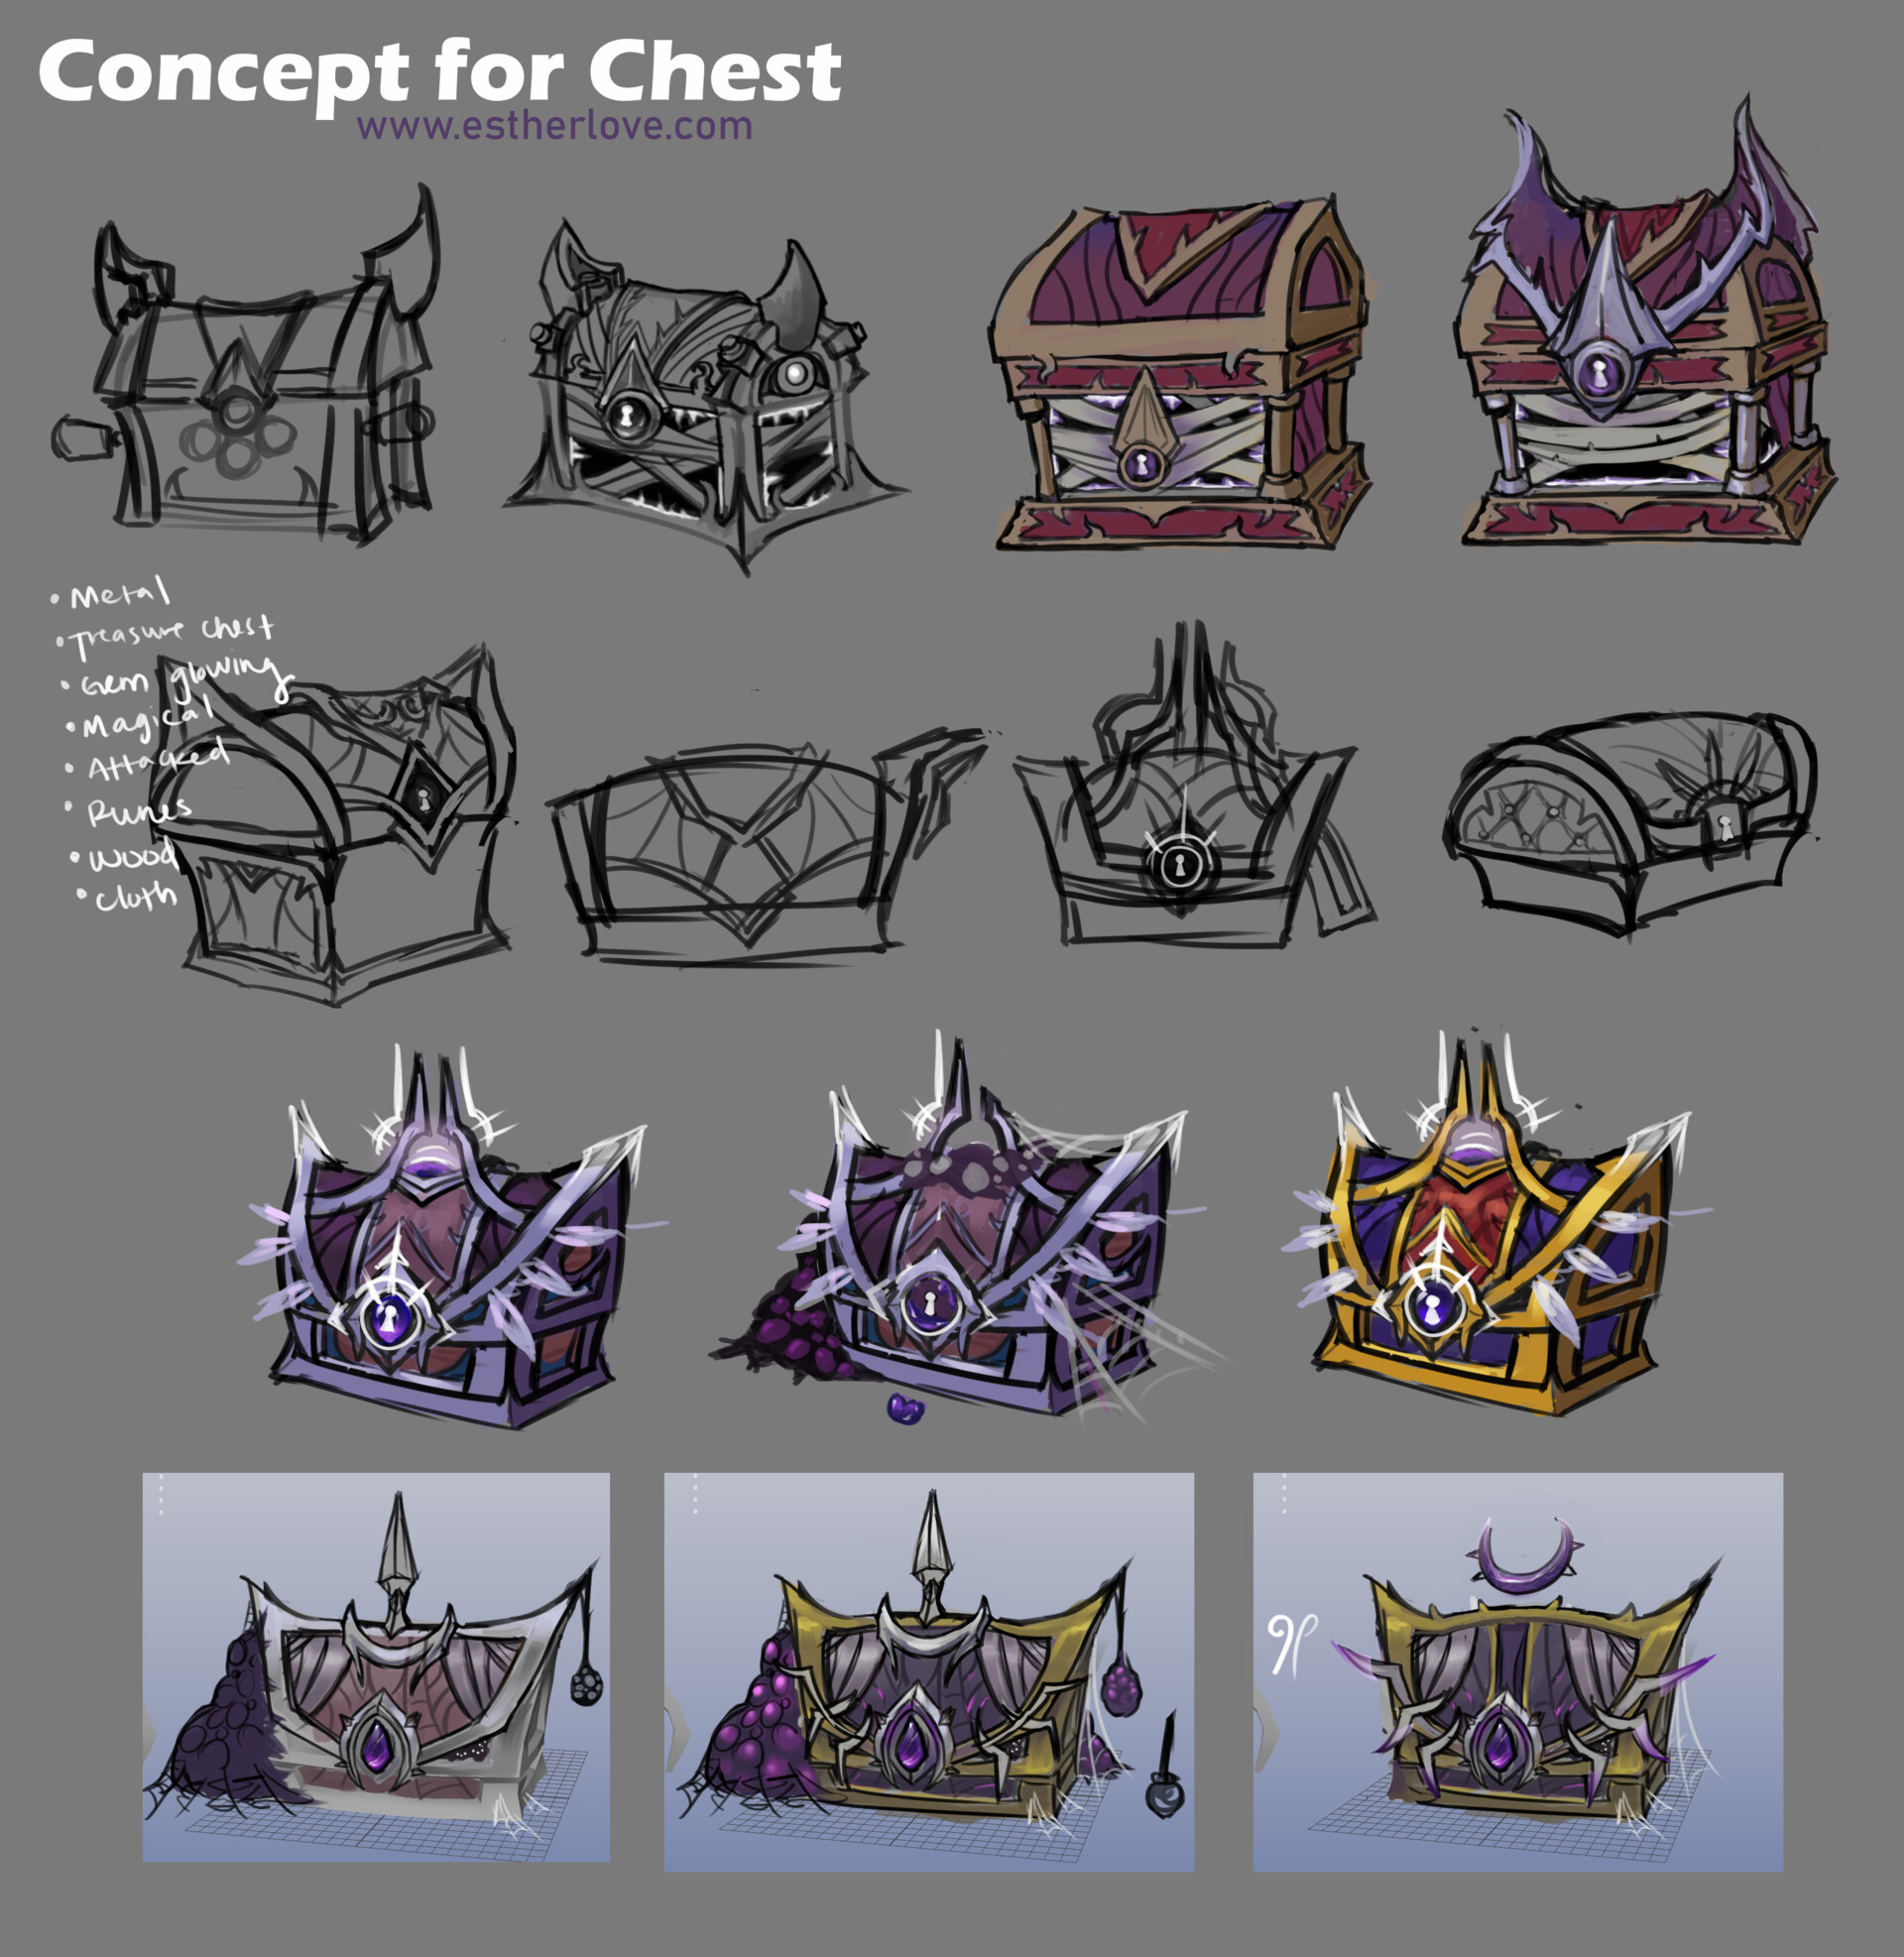 Esther love nightbornechest concept estherlove